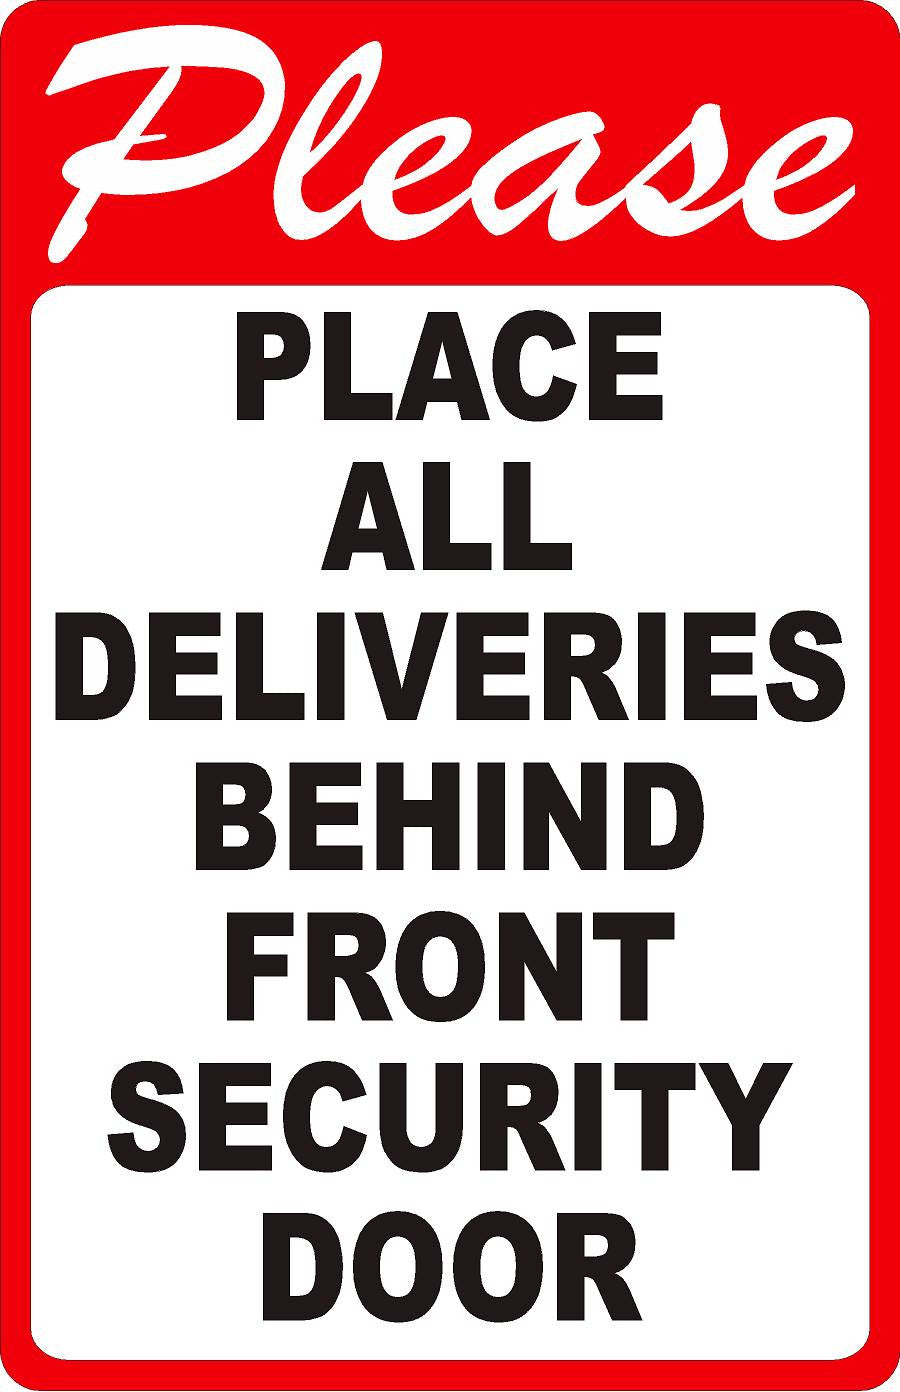 Please Place Deliveries Behind Security Door Sign